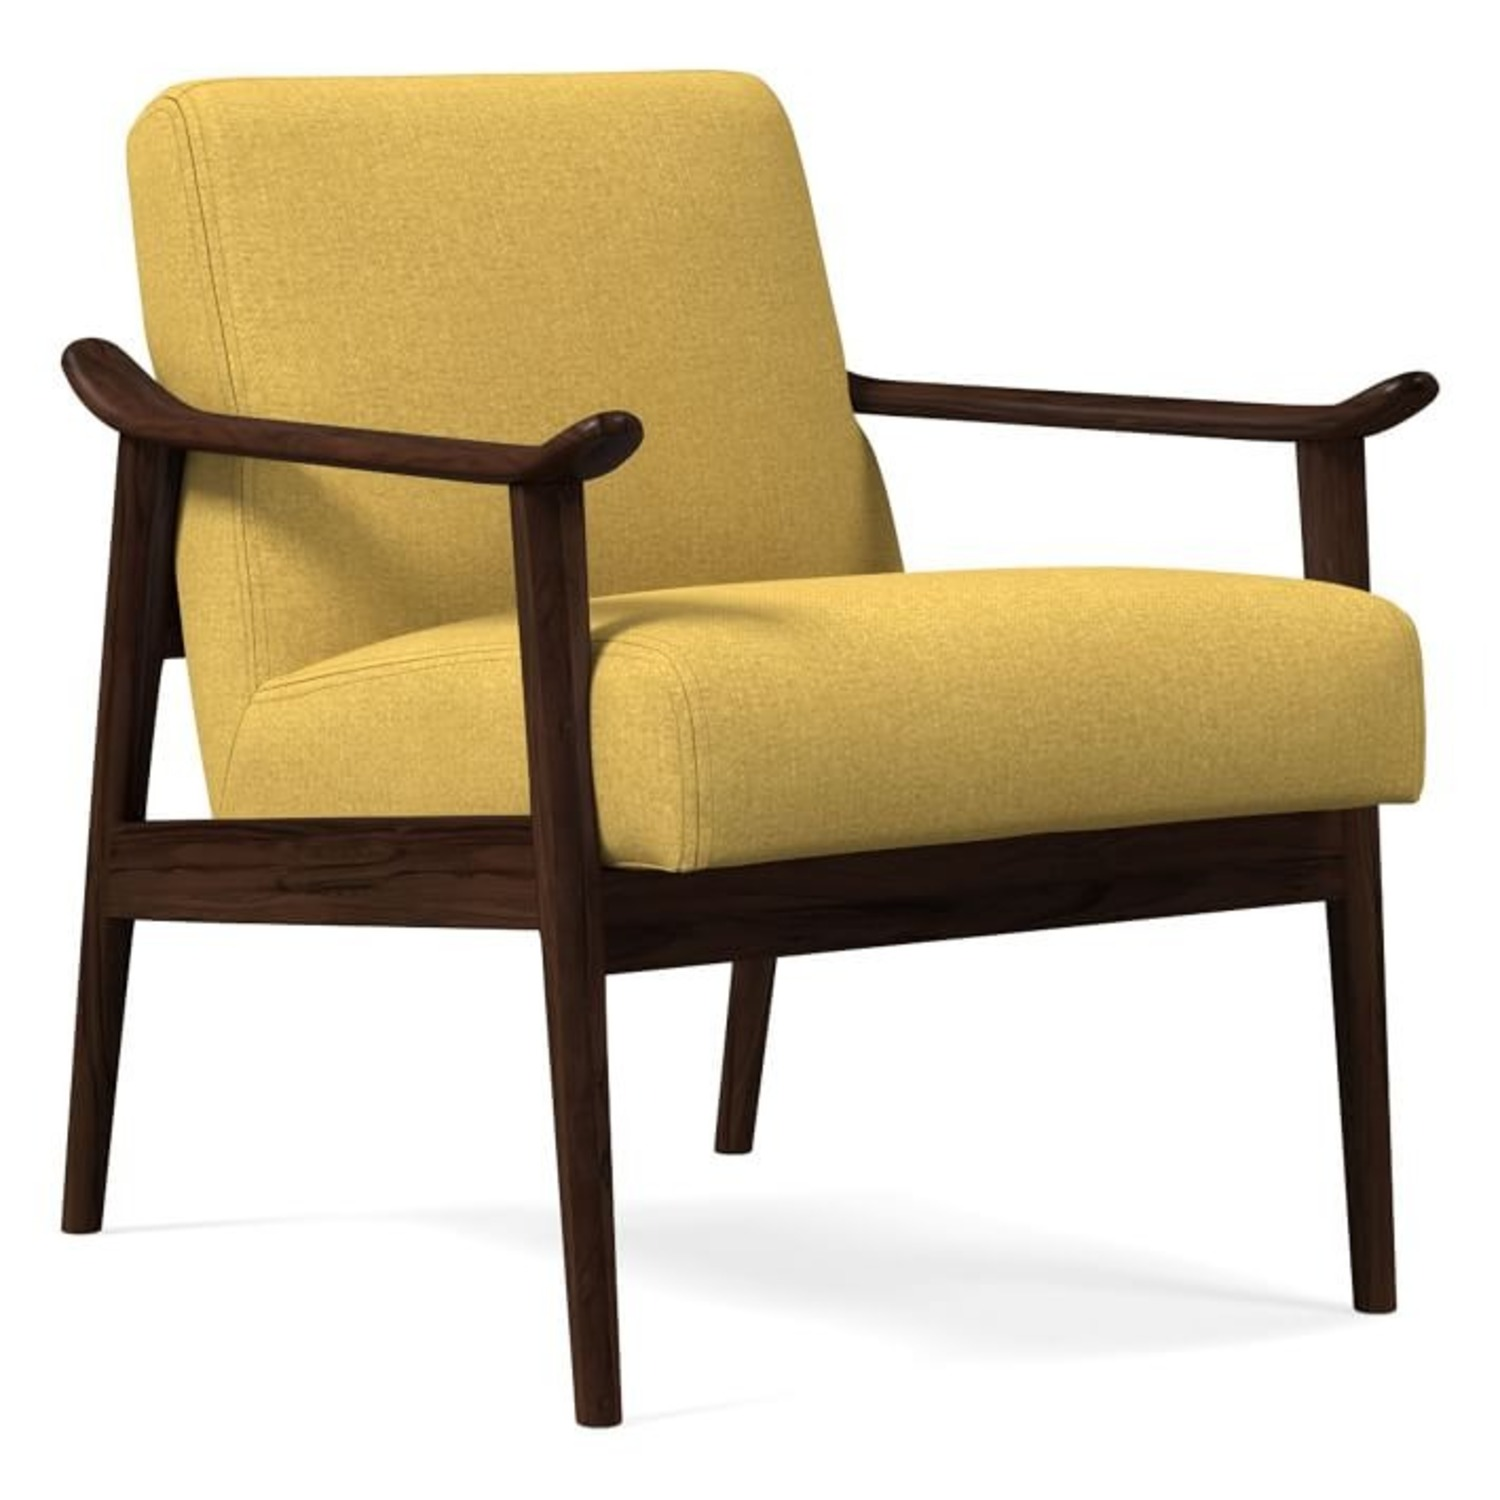 West Elm Mid-Century Show Wood Chair - image-3